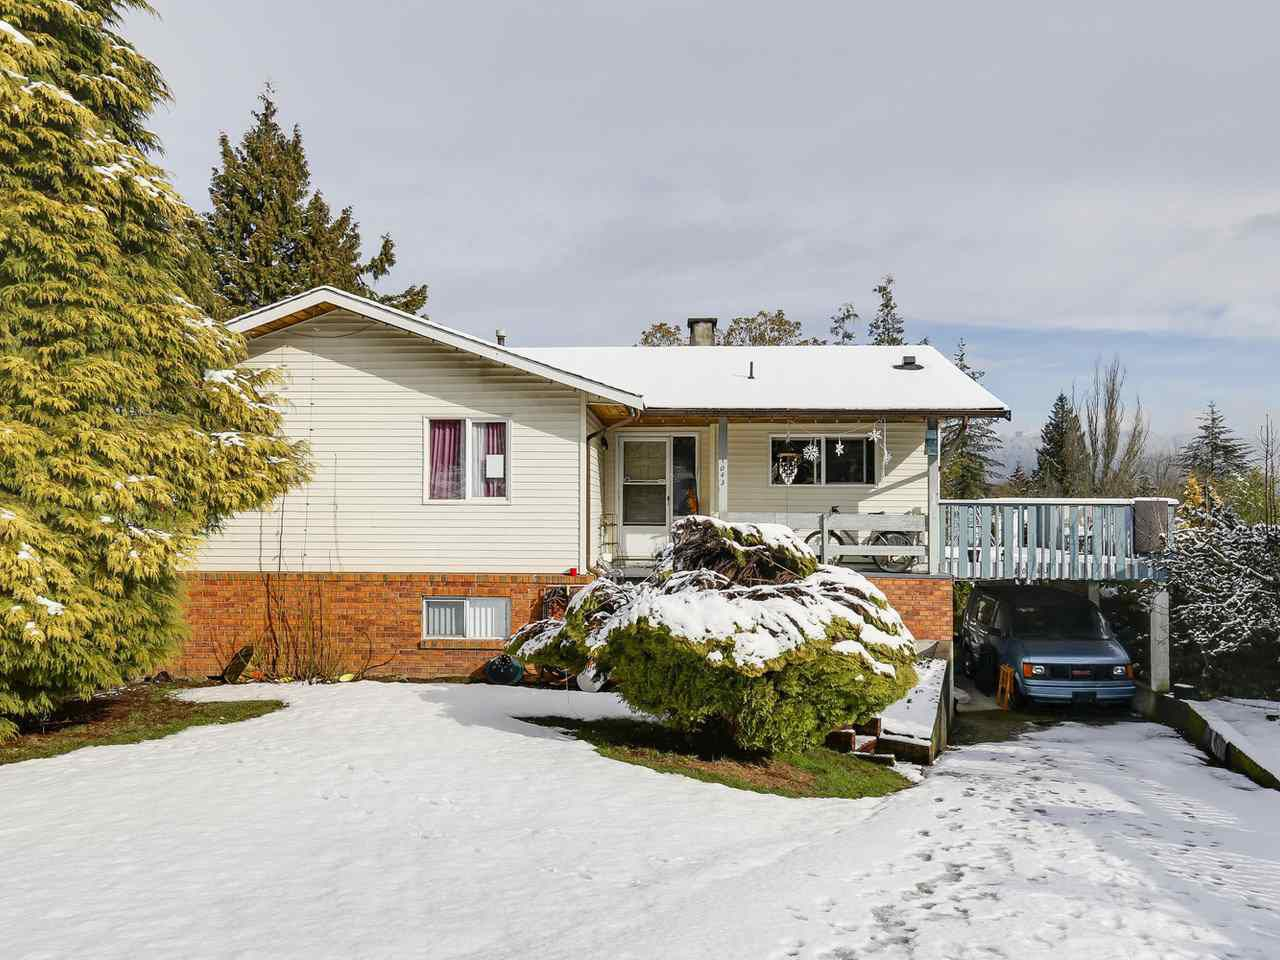 Main Photo: 8043 BURNFIELD Crescent in Burnaby: Burnaby Lake House for sale (Burnaby South)  : MLS®# R2144135